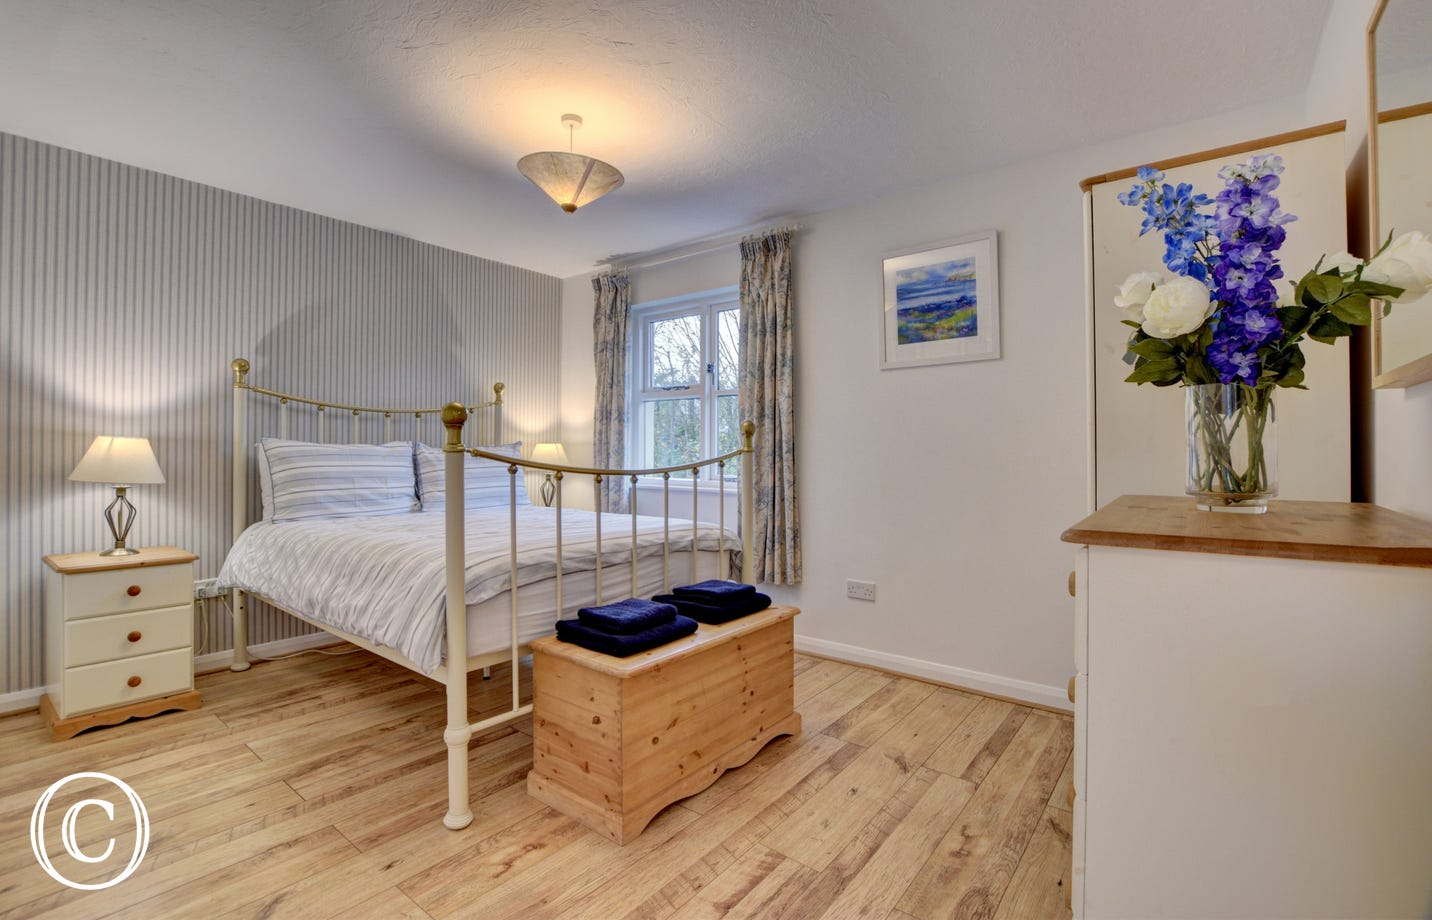 Comfortable and spacious master bedroom with garden views